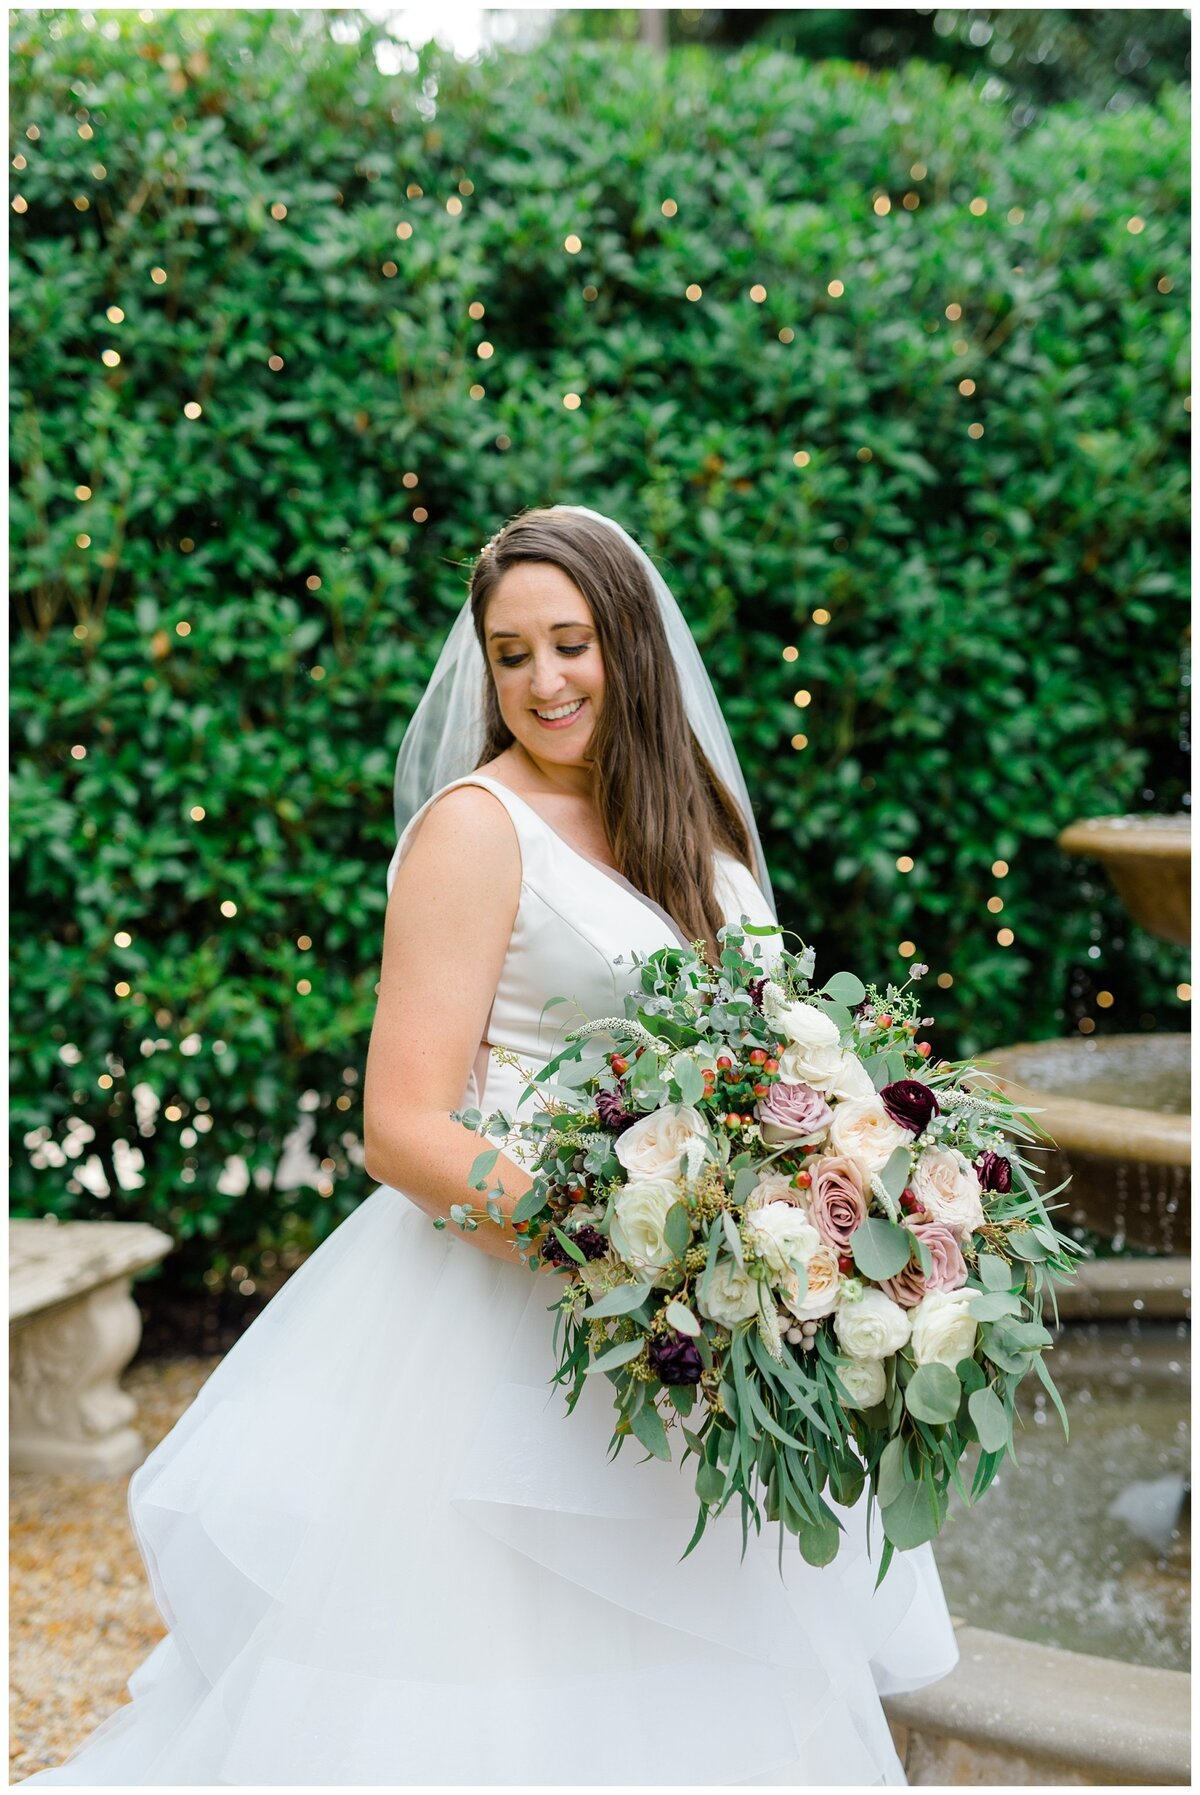 harkins-wedding-atlanta-georgia-photographer-55